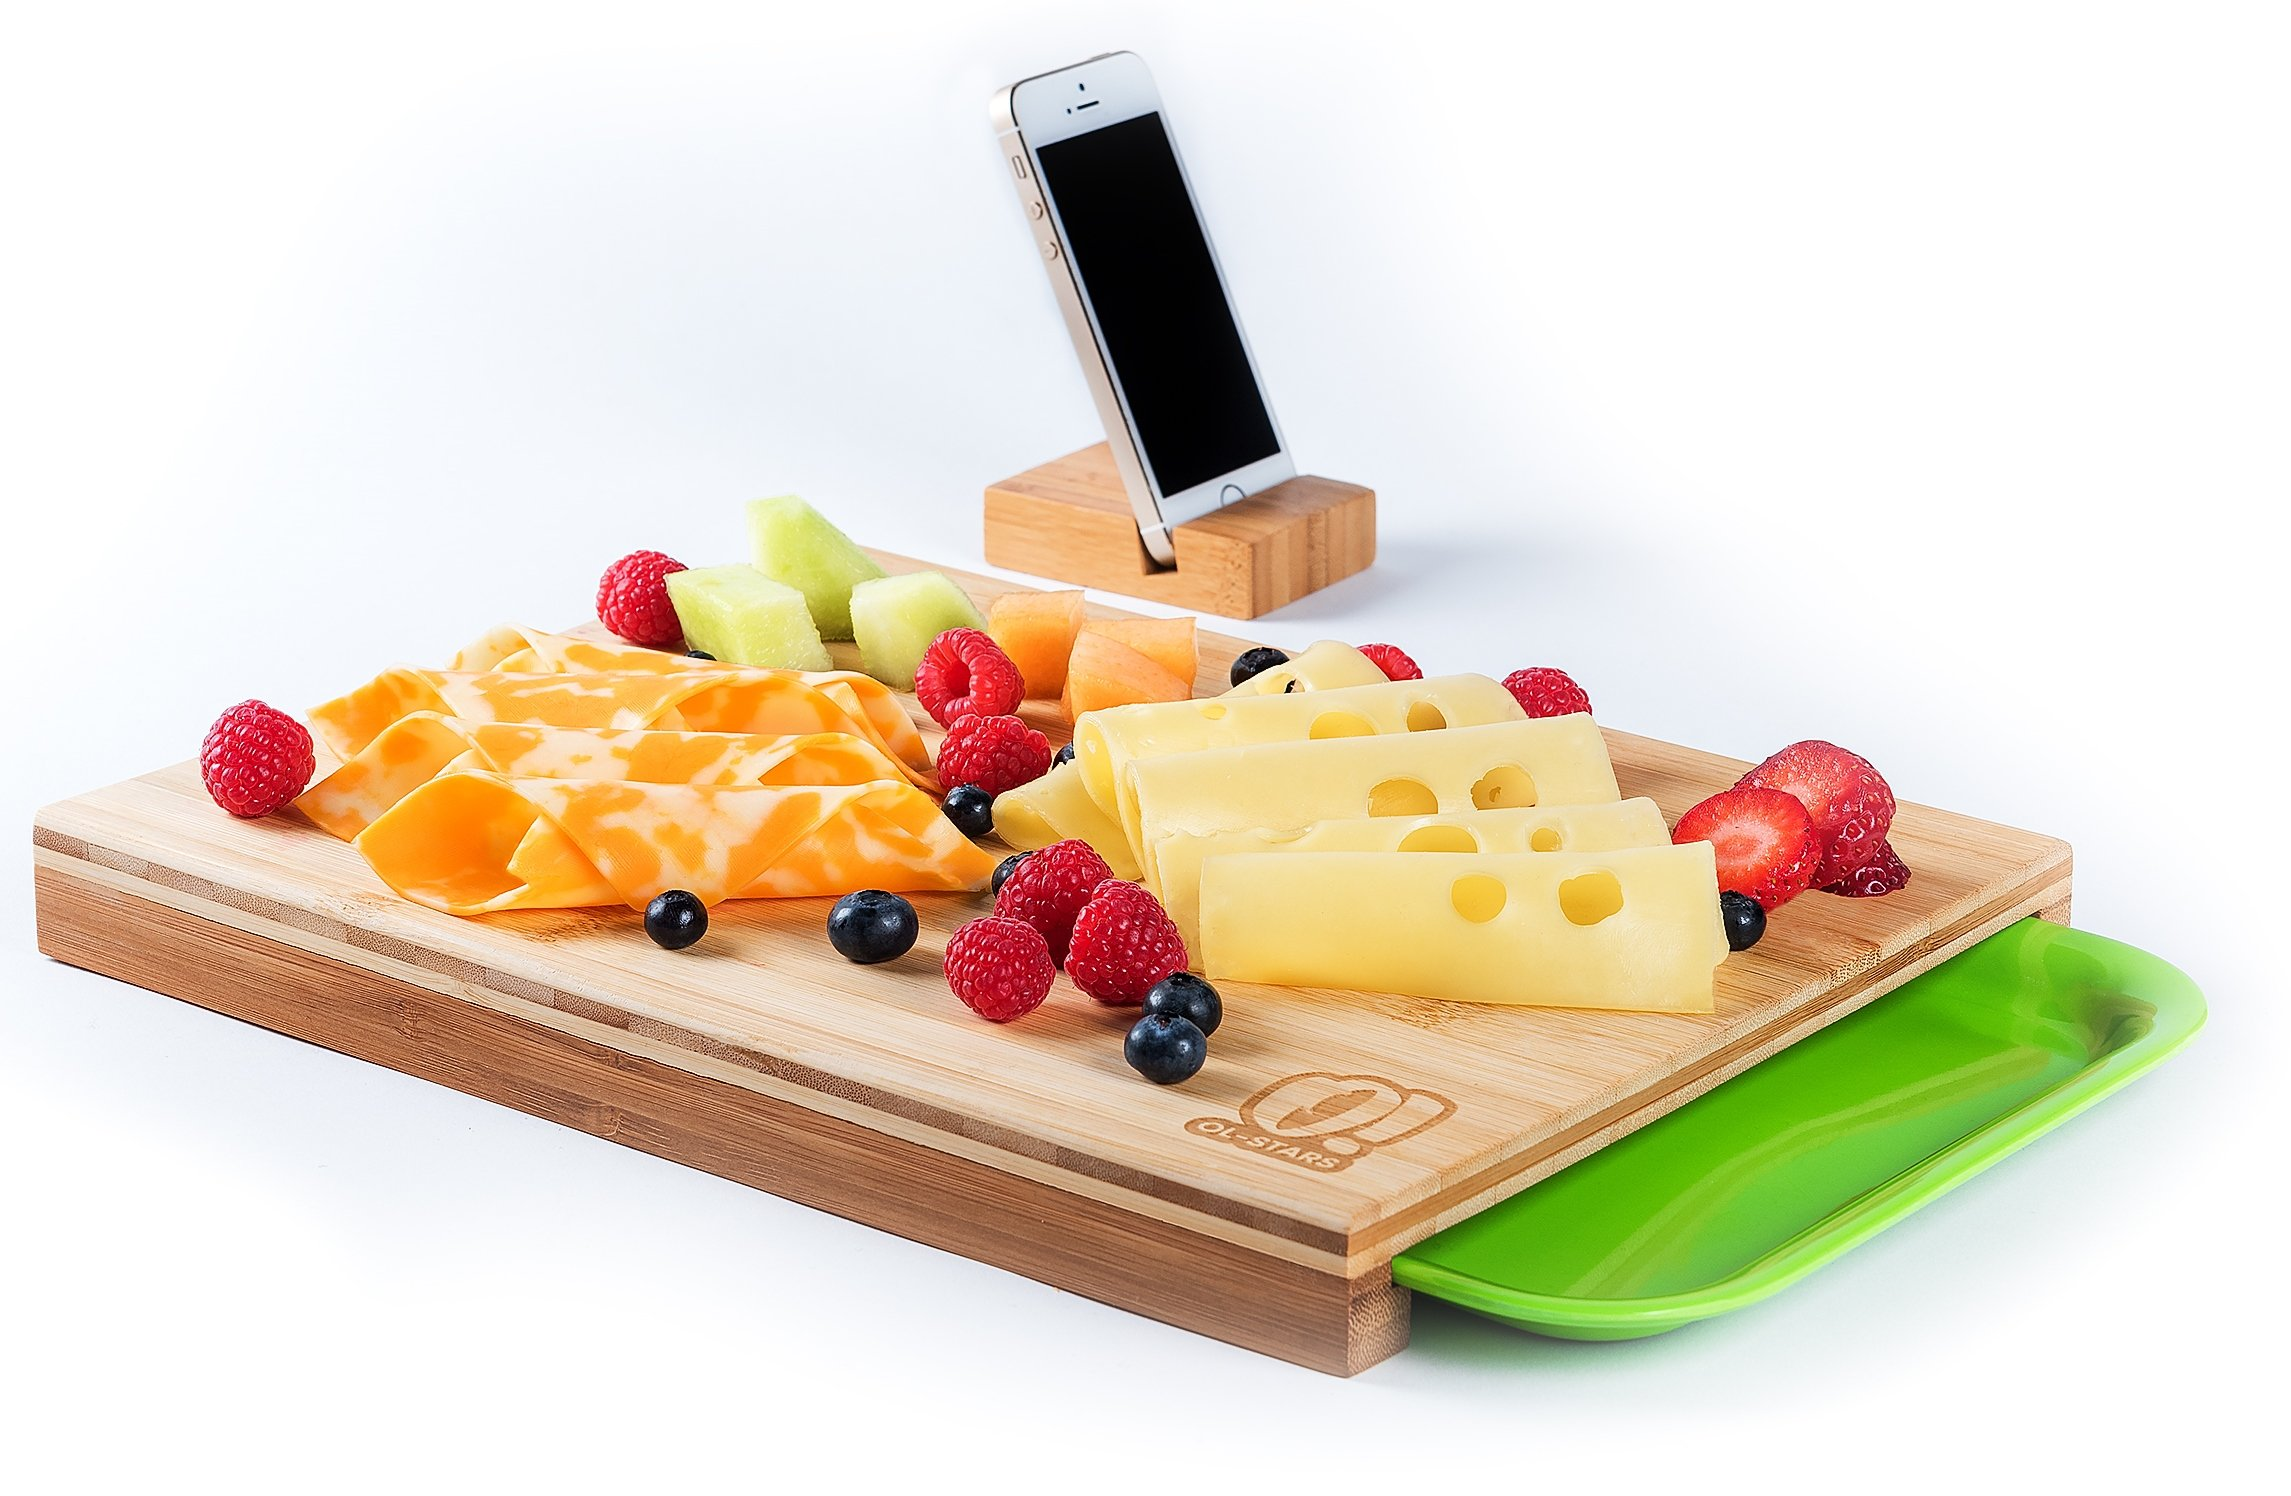 Cutting Board Chopping Serving Carving Organic Bamboo Wood With Drawers For Kitchen Vegetables Fruits Bread Meat Cheese Phone Tablet Holder